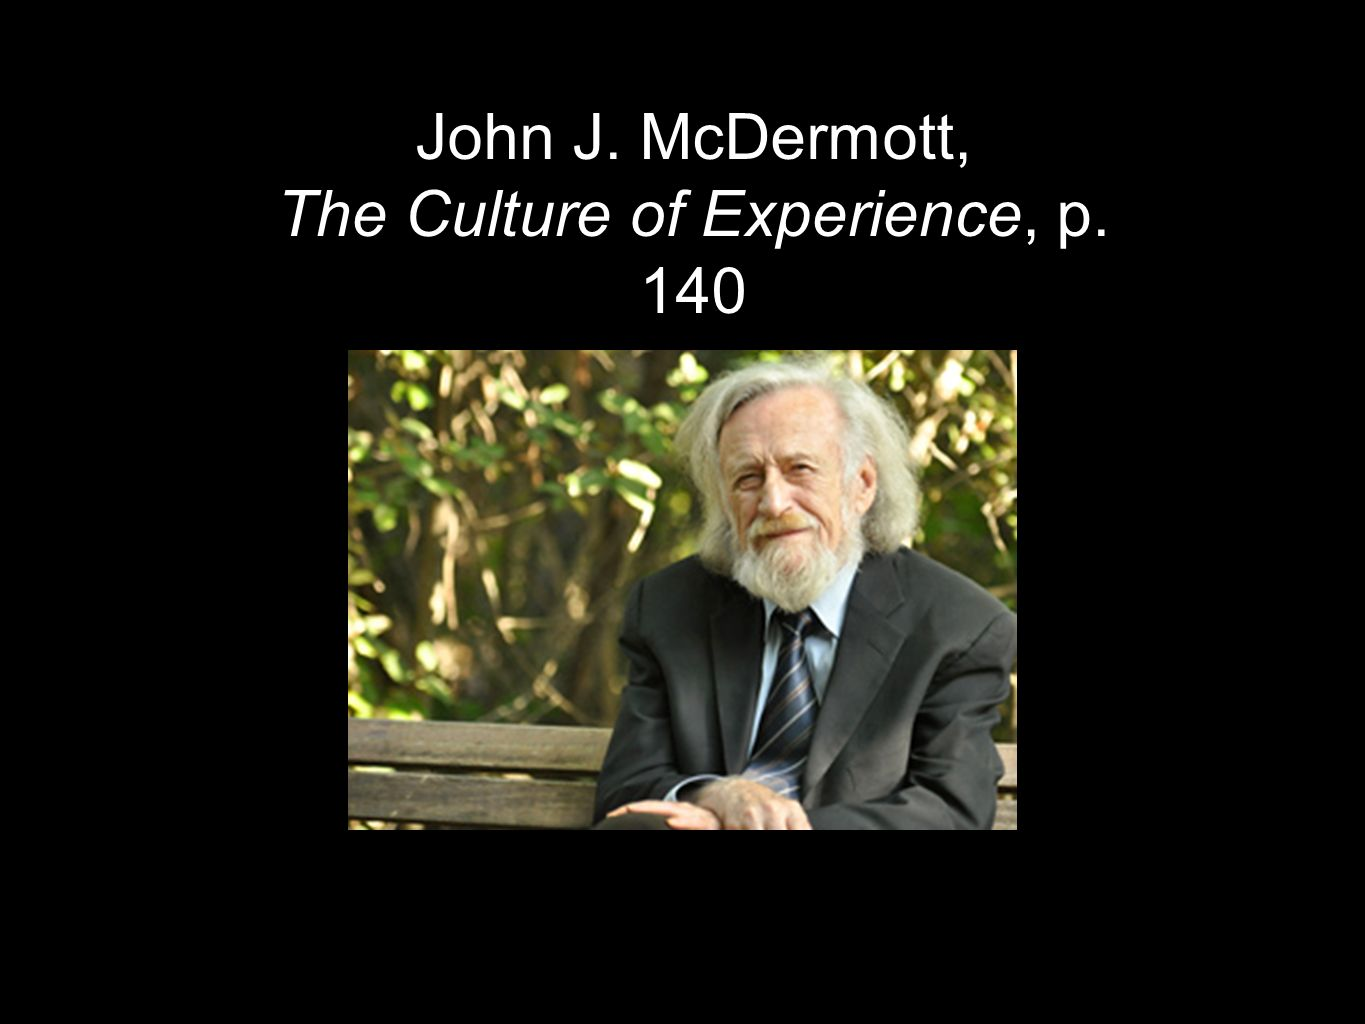 John J. McDermott, The Culture of Experience, p. 140